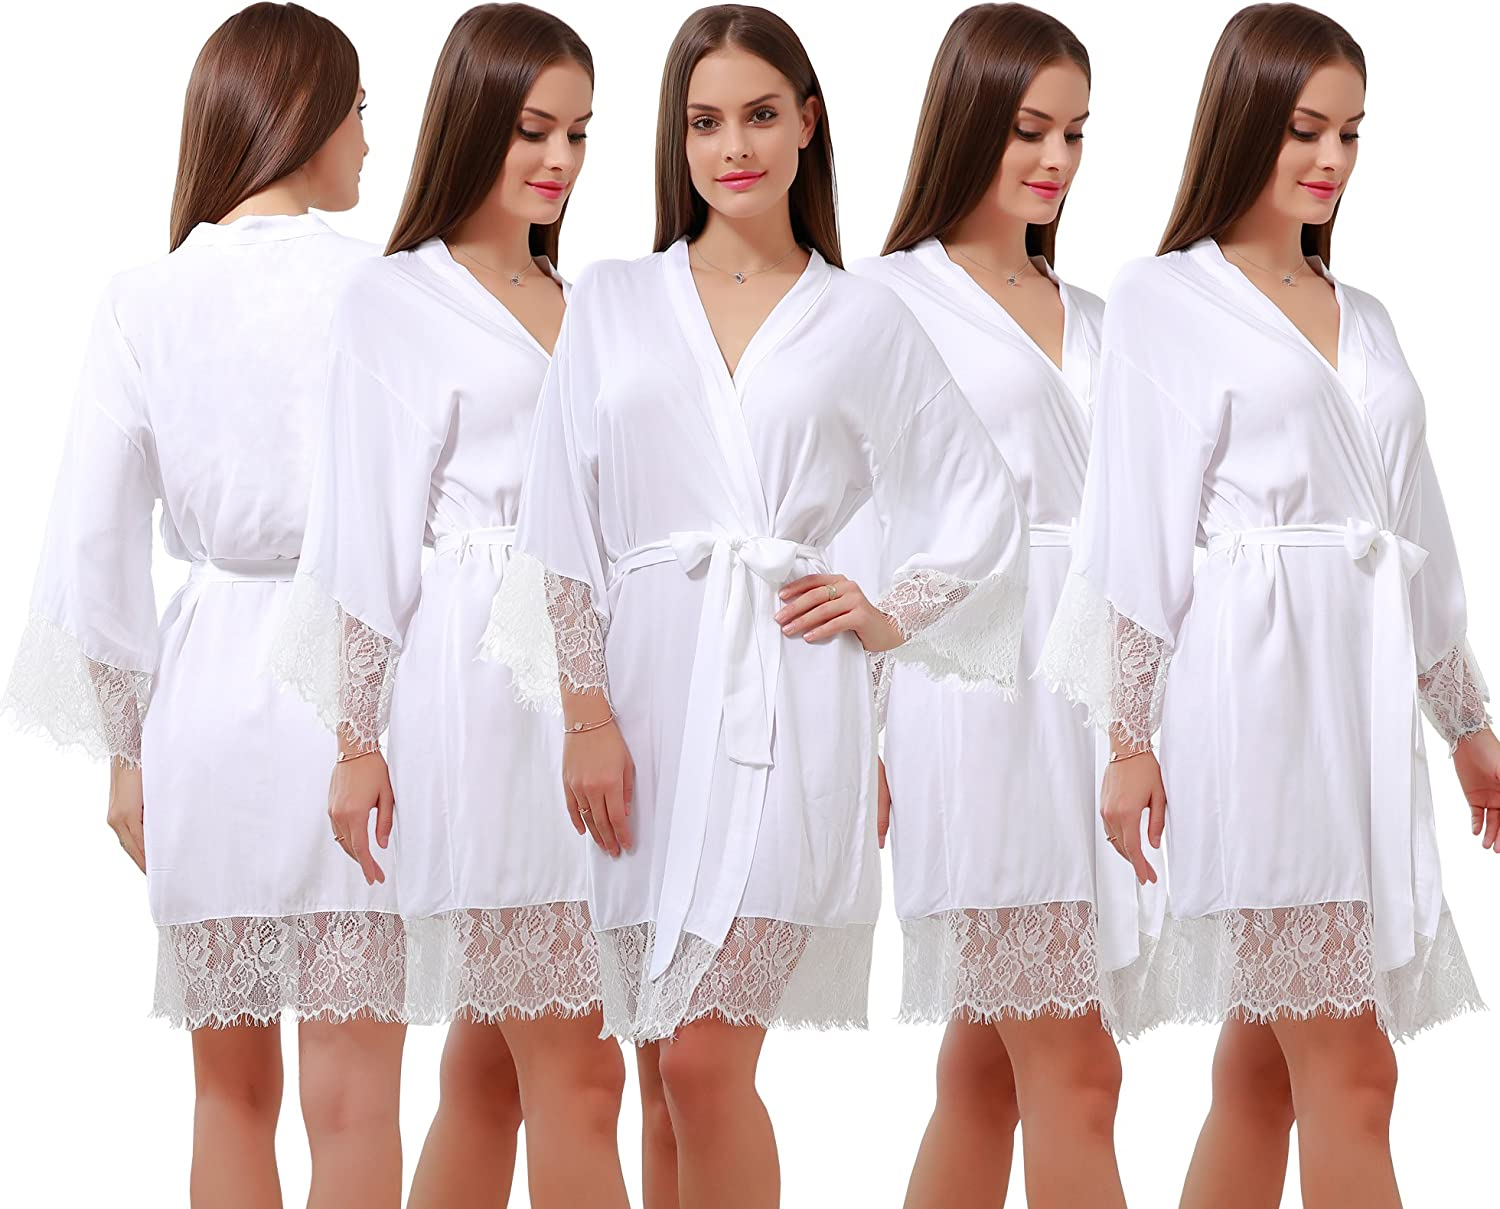 goldOath Women's Best Cotton Robes Set of 5 for Perfect Wedding Party with Lace Trim